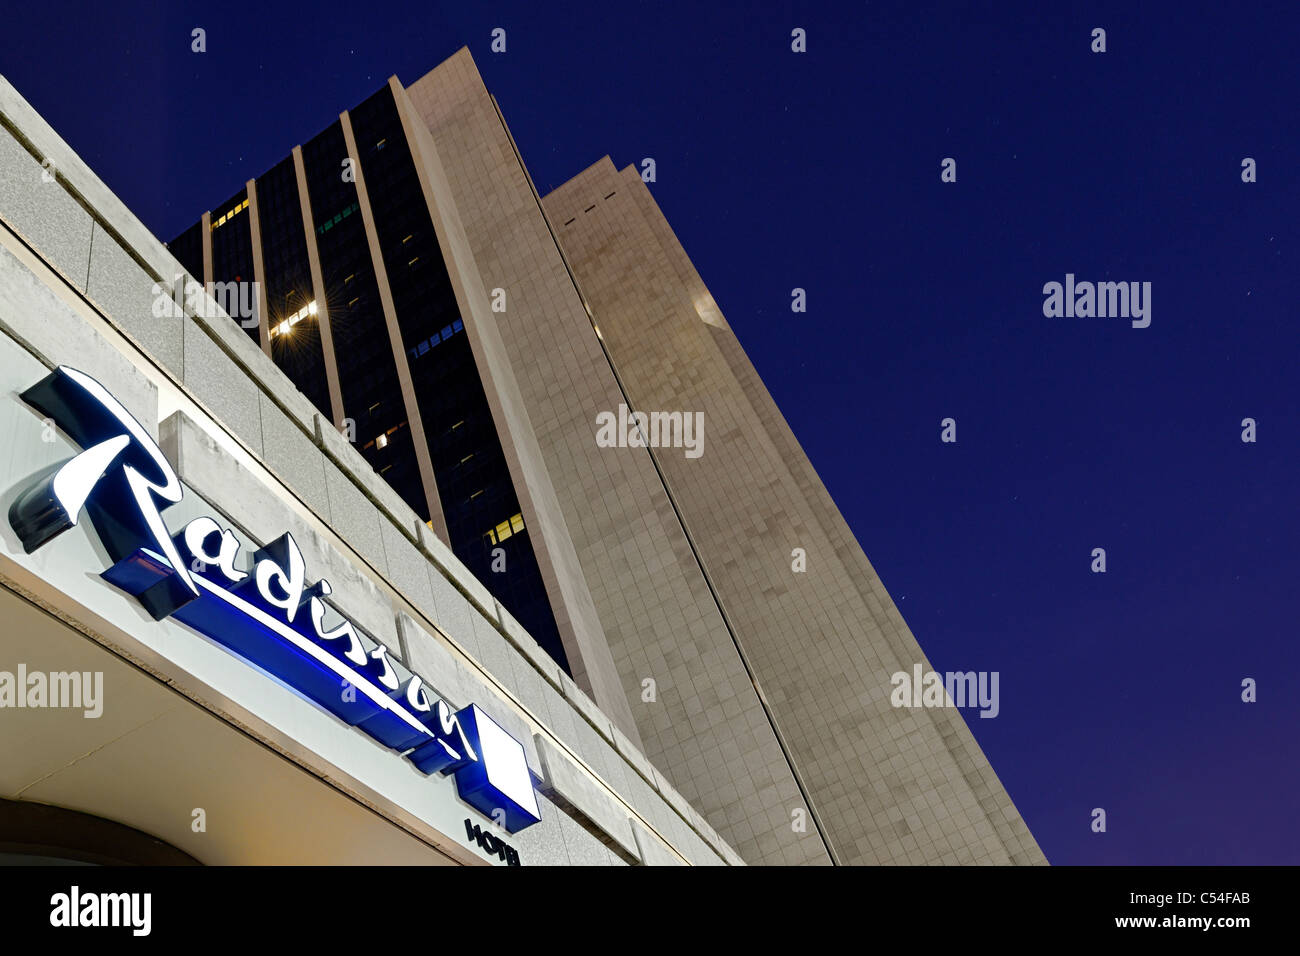 Newly renovated facade of the Radisson Blu Hotel, 32 floors, Dammtorbahnhof, Hamburg-Mitte district, Hamburg, Germany, - Stock Image